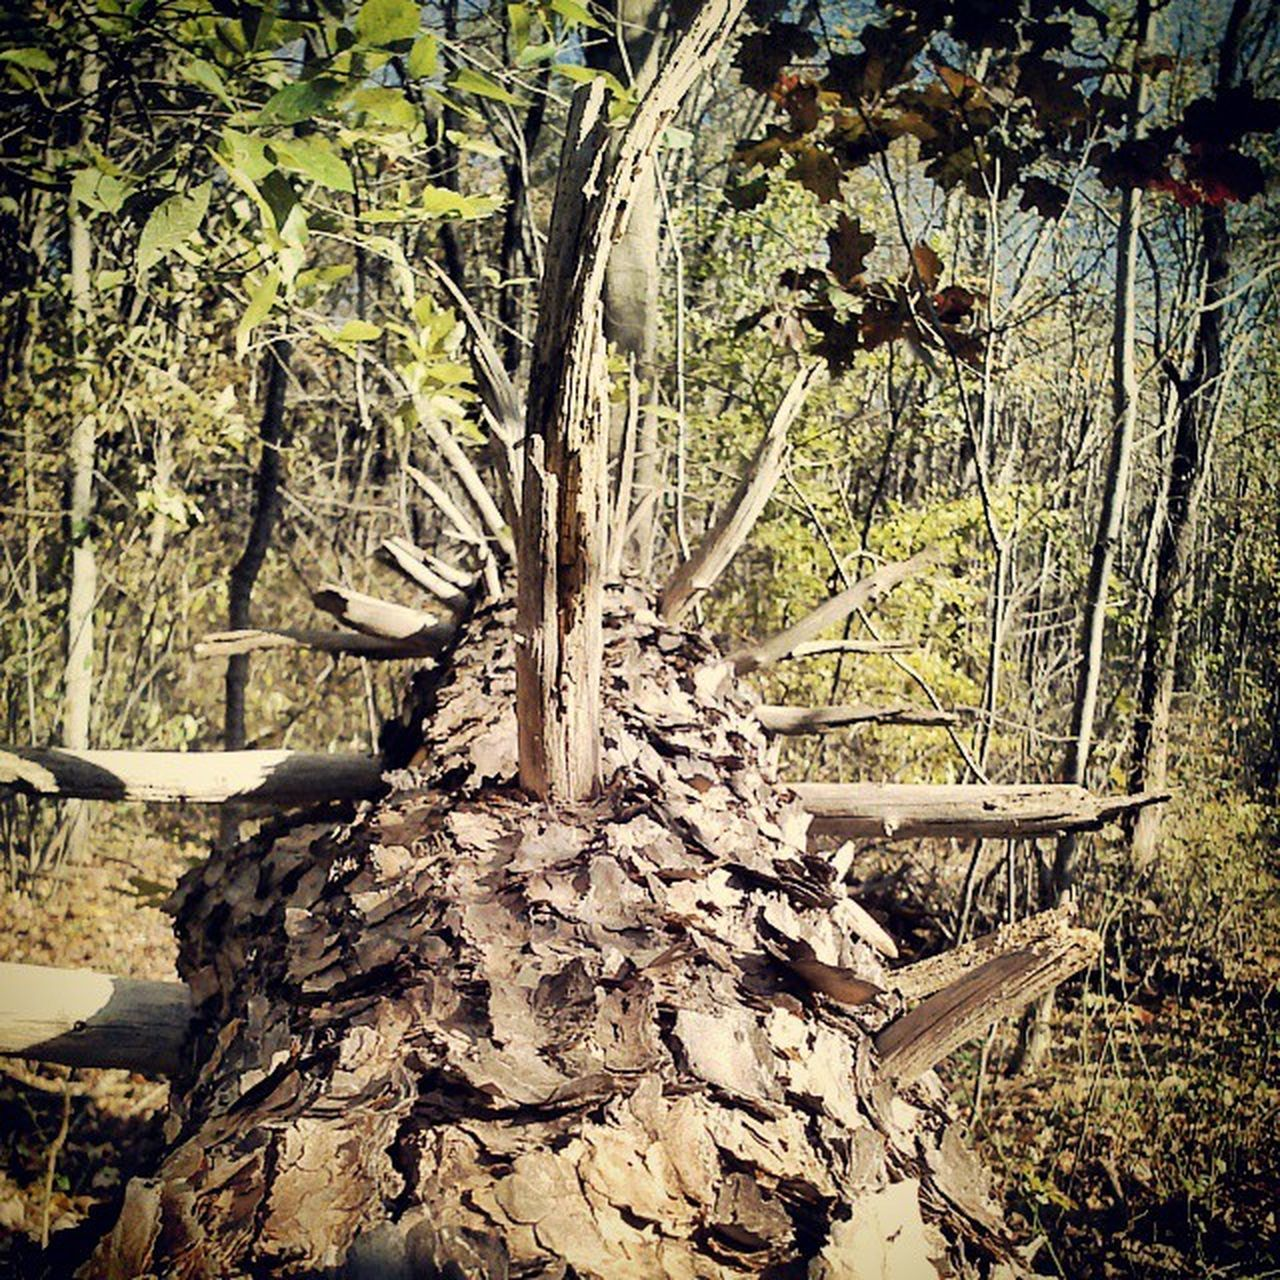 tree, tree trunk, nature, day, forest, no people, growth, environment, outdoors, tranquility, branch, dead tree, beauty in nature, close-up